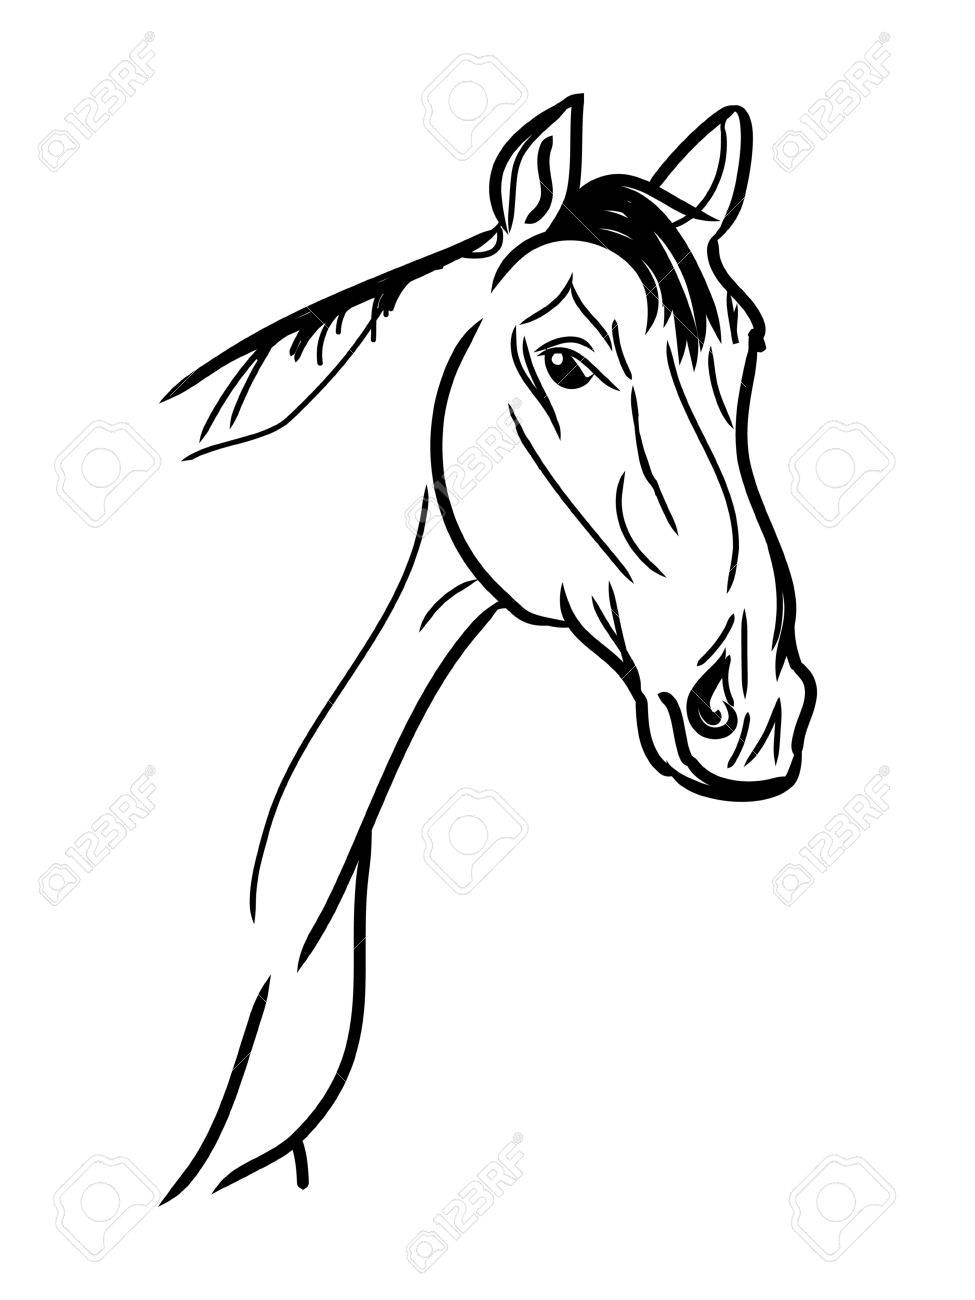 975x1300 Arabian Horse, Horse (Arab, Head). Drawing By Hand. Royalty Free